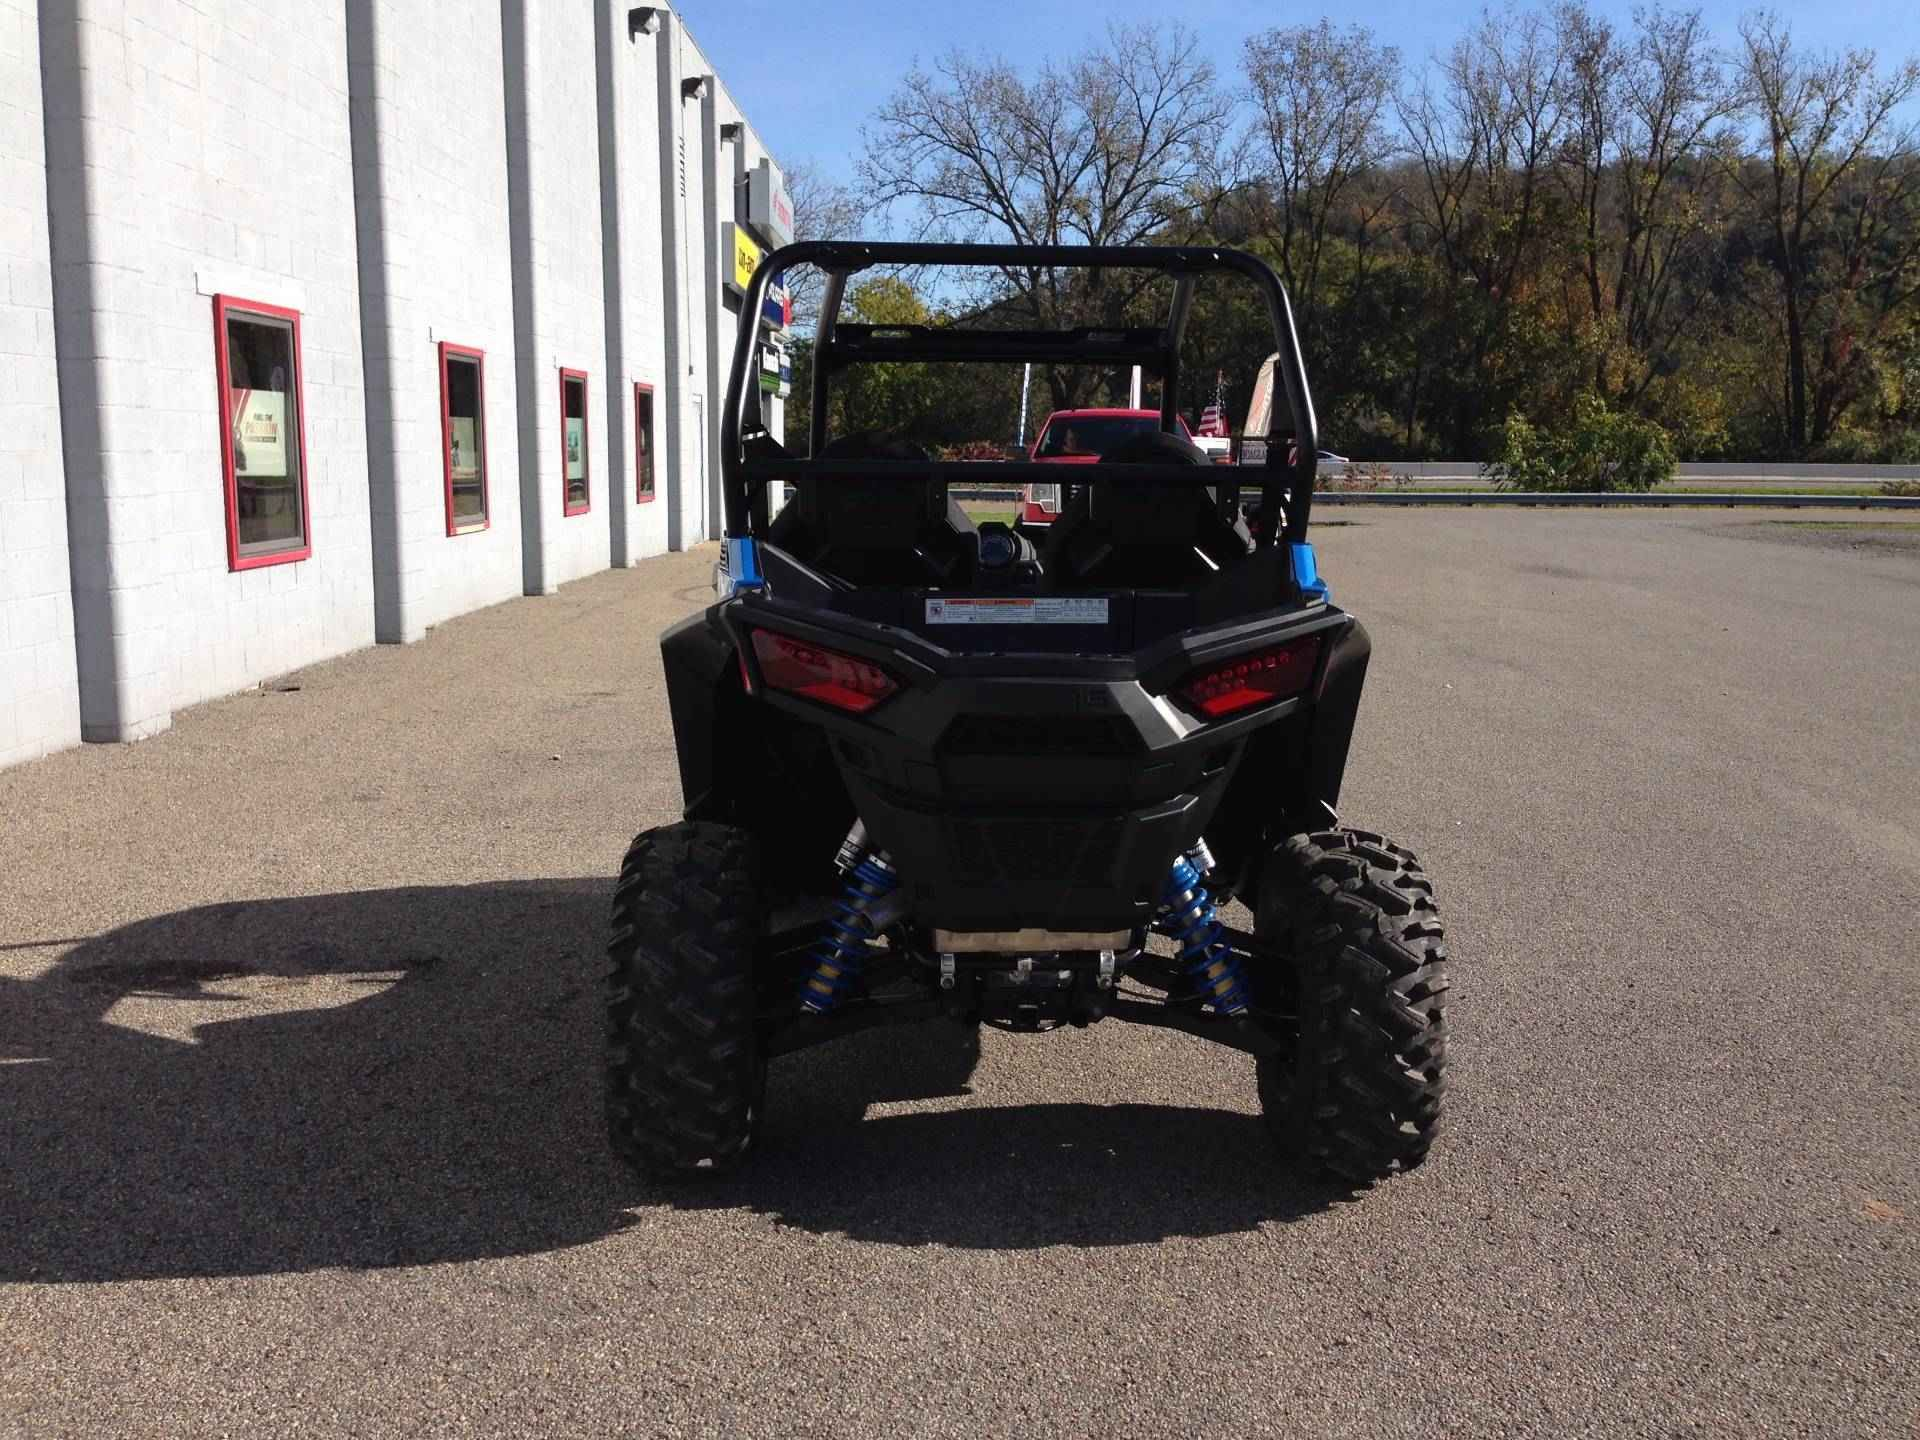 New 2017 Polaris RZR® S 900 EPS ATVs For Sale in Ohio. We carry the full line of powersports products from all the major manufactures. Financing is available and we accept all applications! All new units are in showroom condition and come with a full factory warranty. Sale prices are not honored to walk-in customers at any of our Xtreme dealerships. Call or text Josh at 740-296-9653 today for a hassle free shopping experience! VELOCITY BLUE The same power and capability as the RZR® S 900…